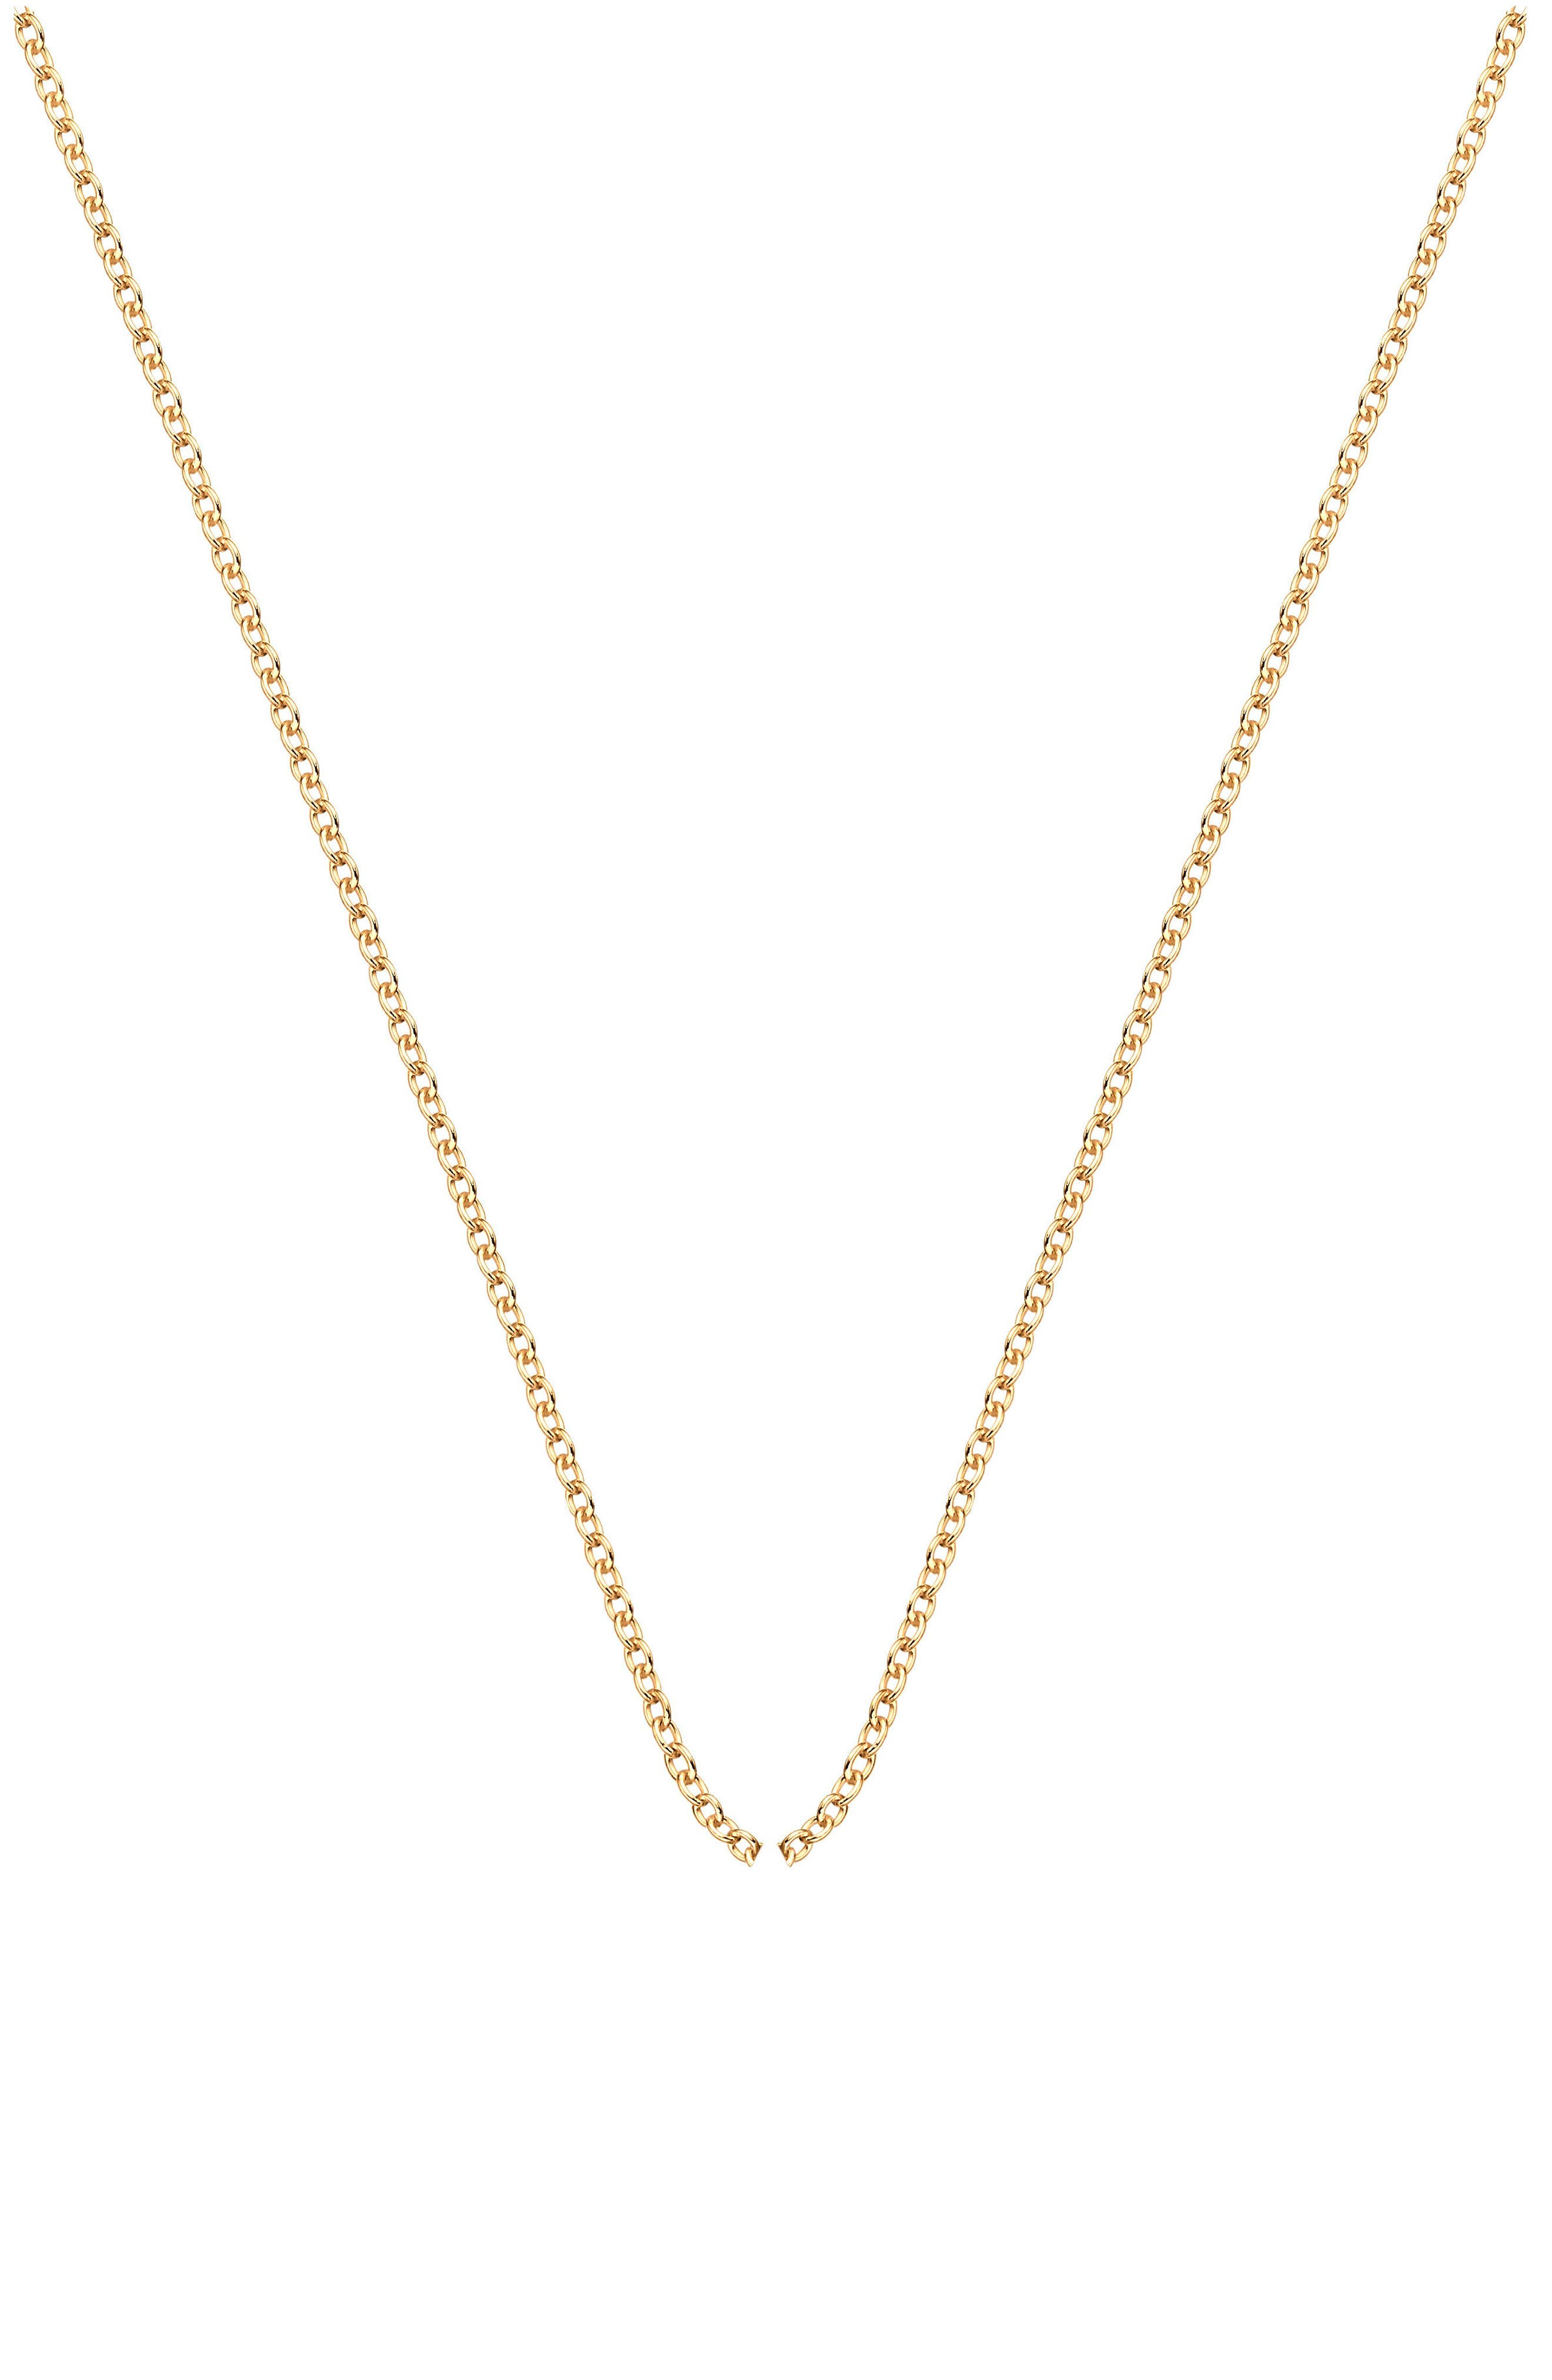 Rolo Chain Necklace,                         Main,                         color, YELLOW GOLD